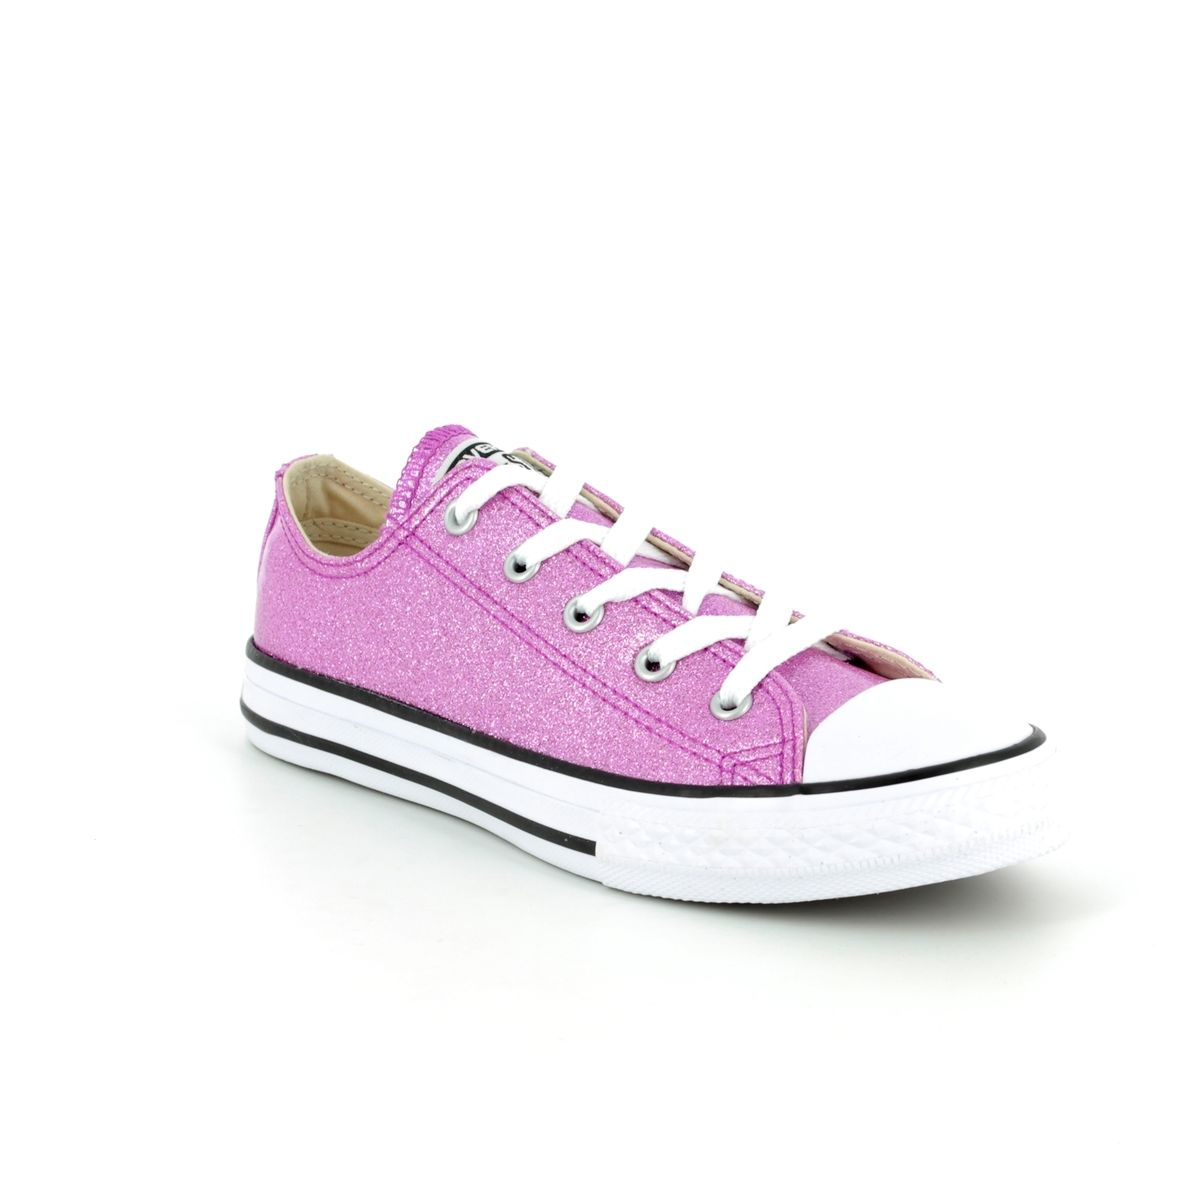 38ddd695e6b2 Converse All Star Ox Jnr 660047C Pink Glitter Lacing Trainers